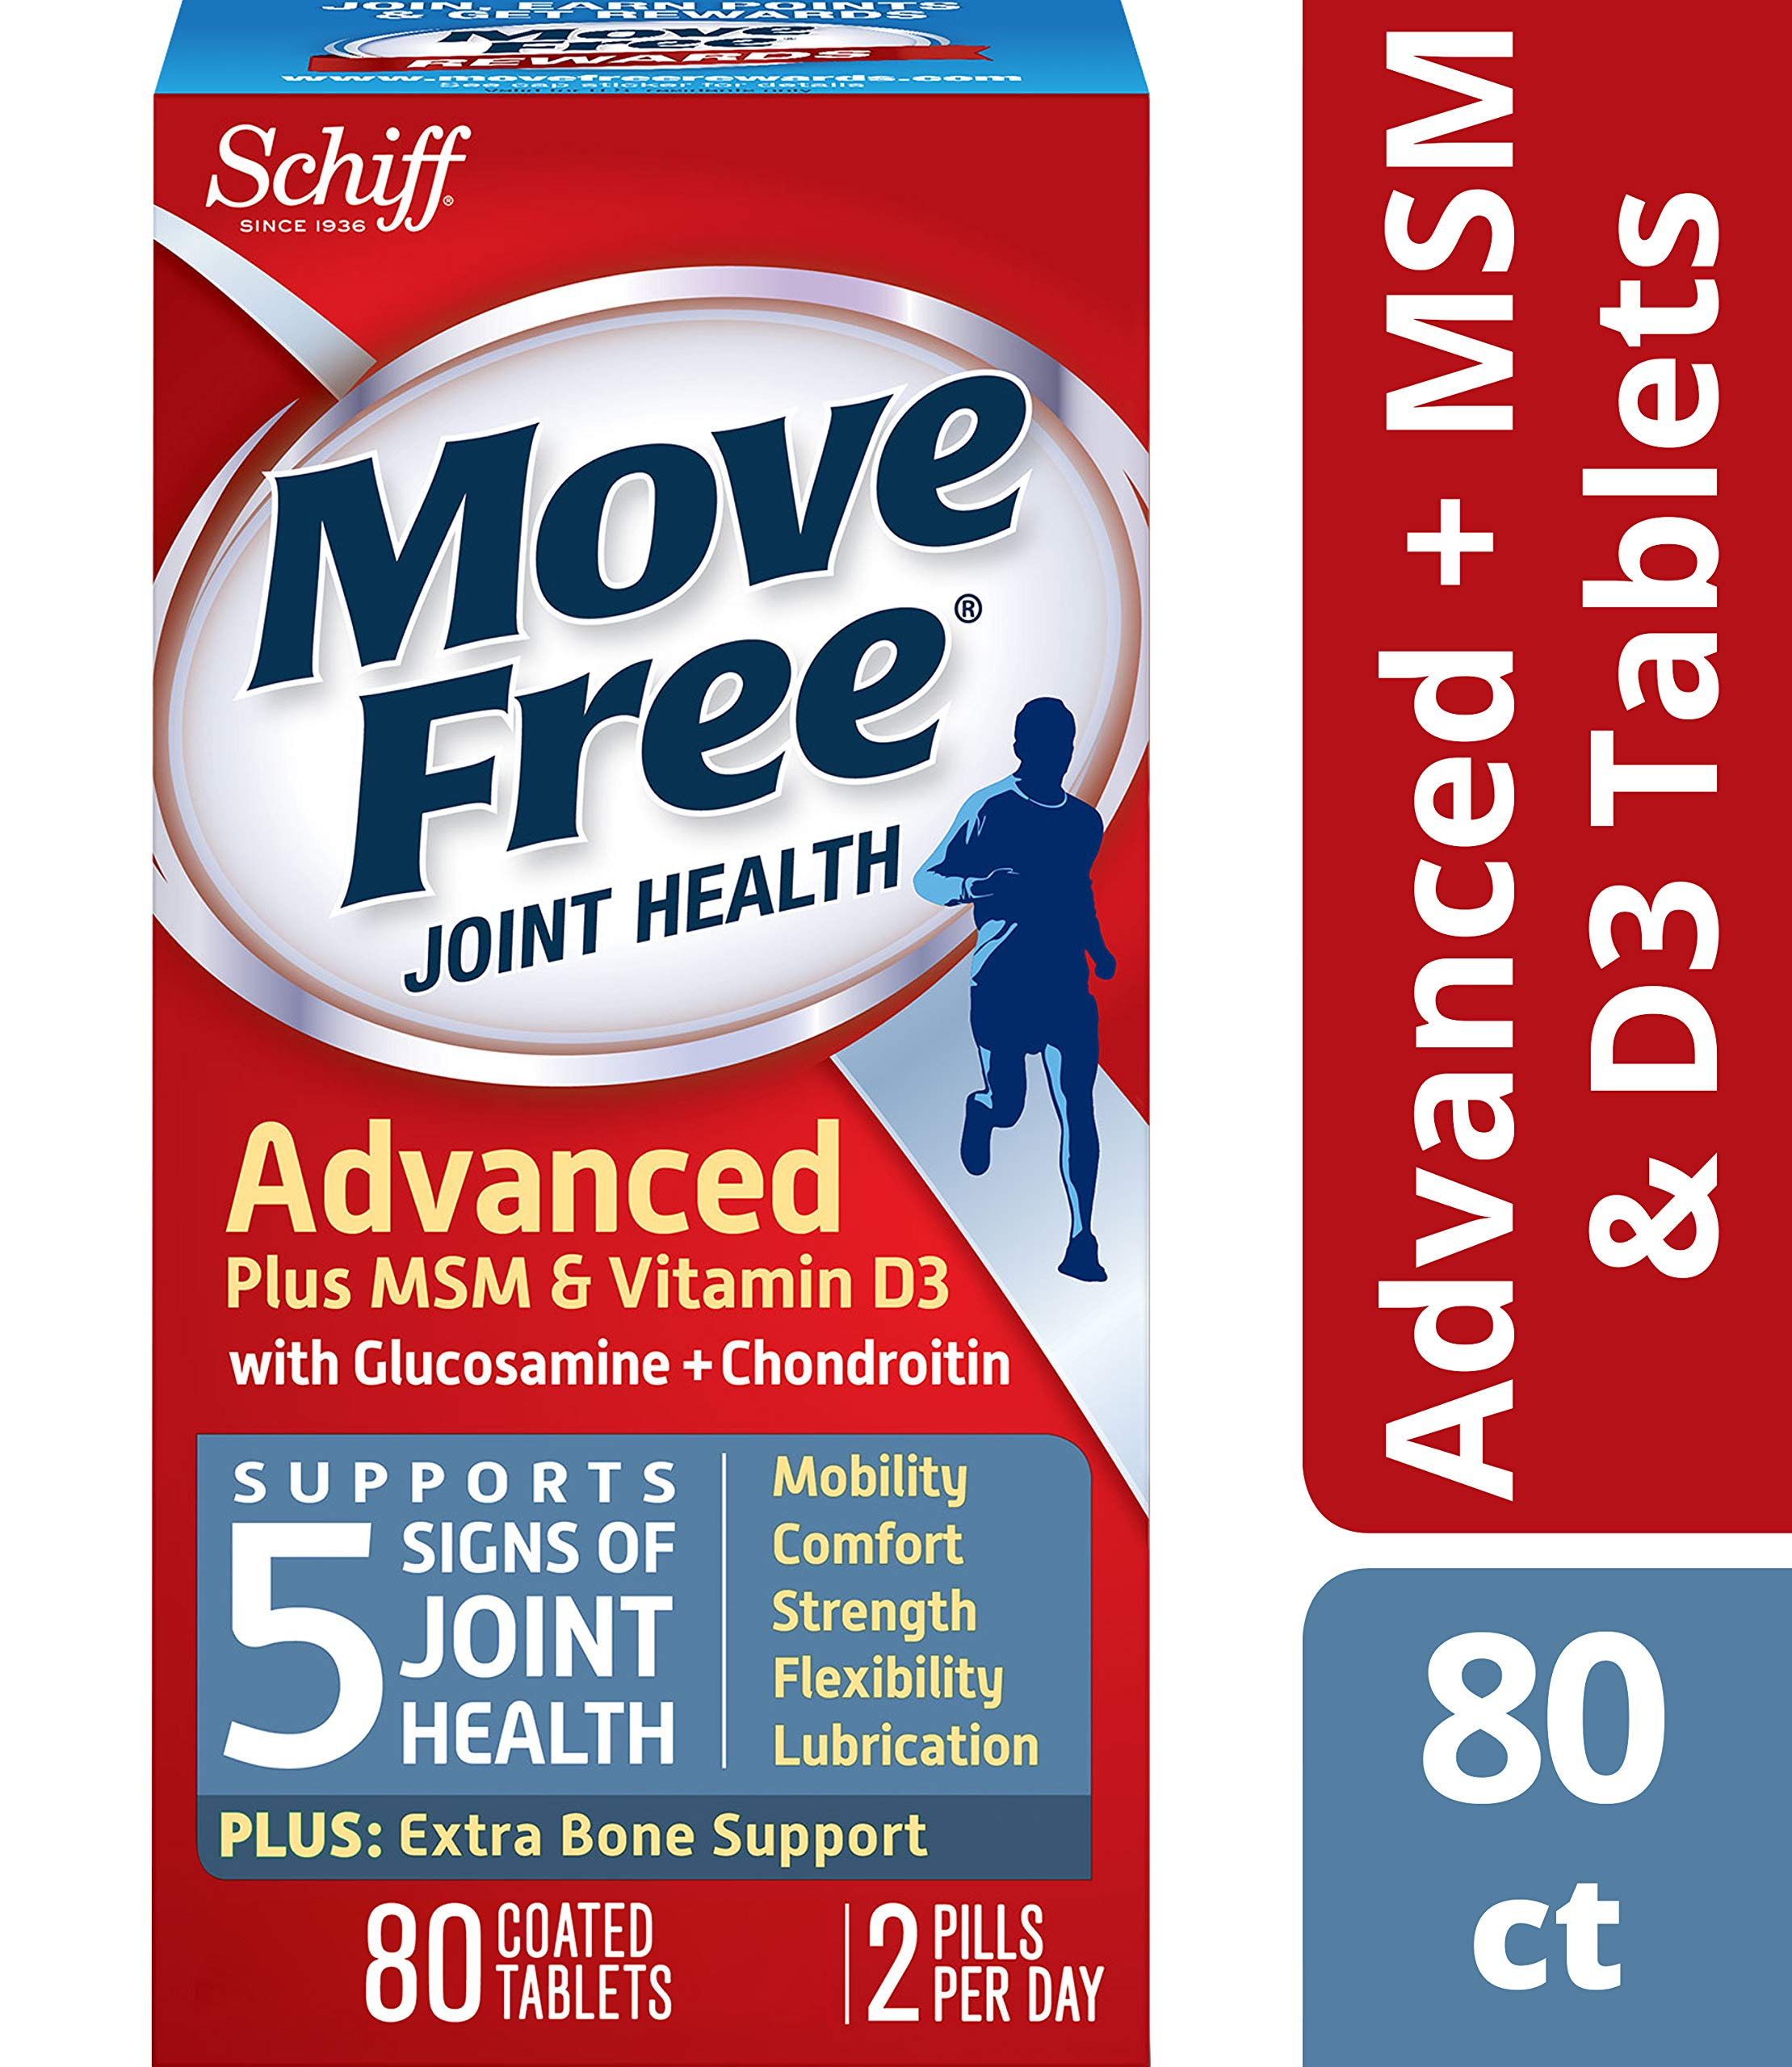 Move Free Advanced Glucosamine Chondroitin MSM Vitamin D3 and Hyaluronic Acid Joint Supplement, 80 Count by Move Free